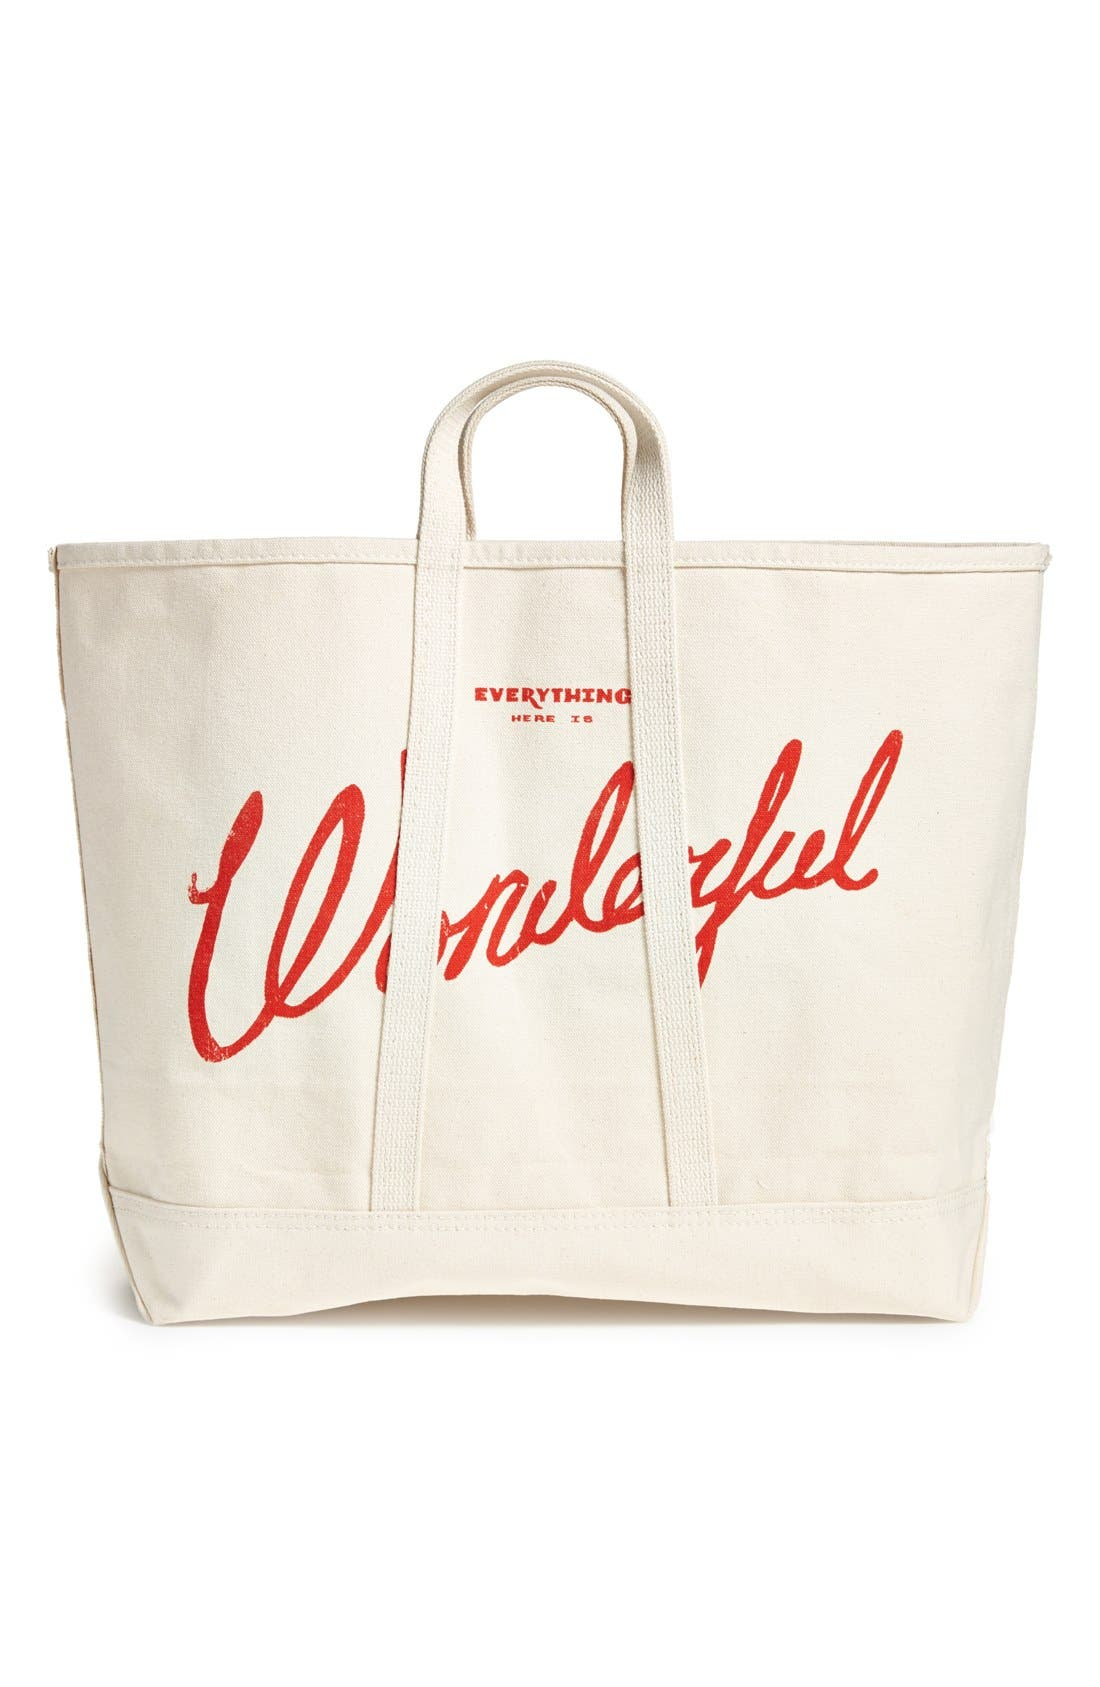 Alternate Image 1 Selected - Best Made Co '100lb Coal Bag' Canvas Tote